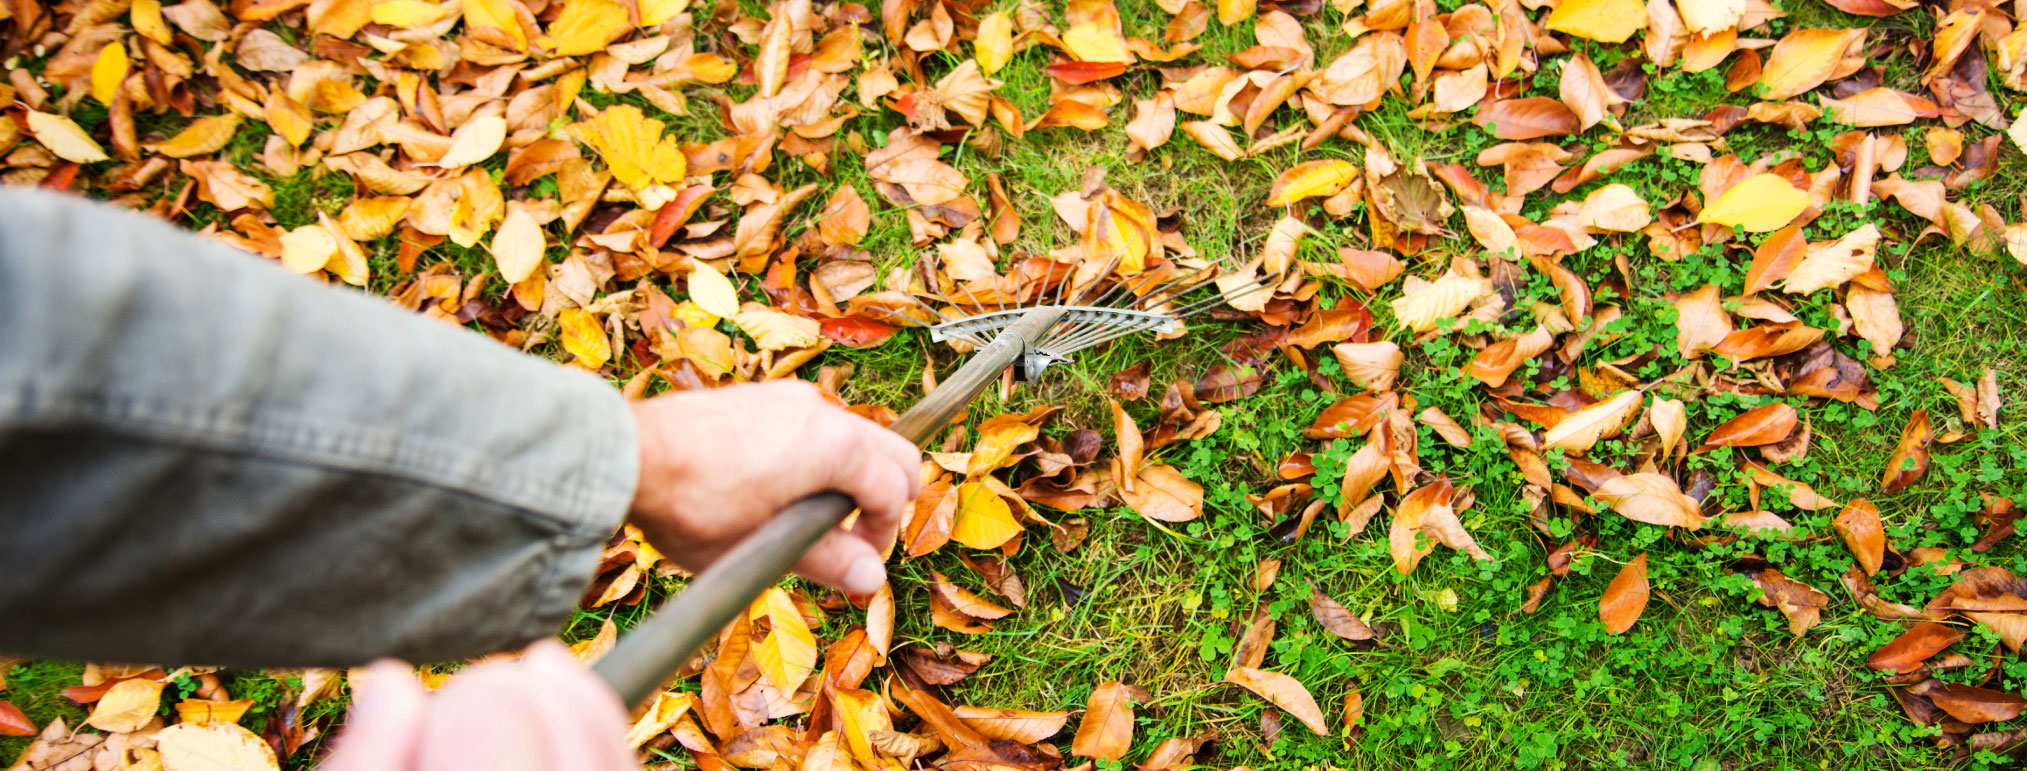 Eco-Friendly Ways To Deal With Fall Leaves In Your Backyard